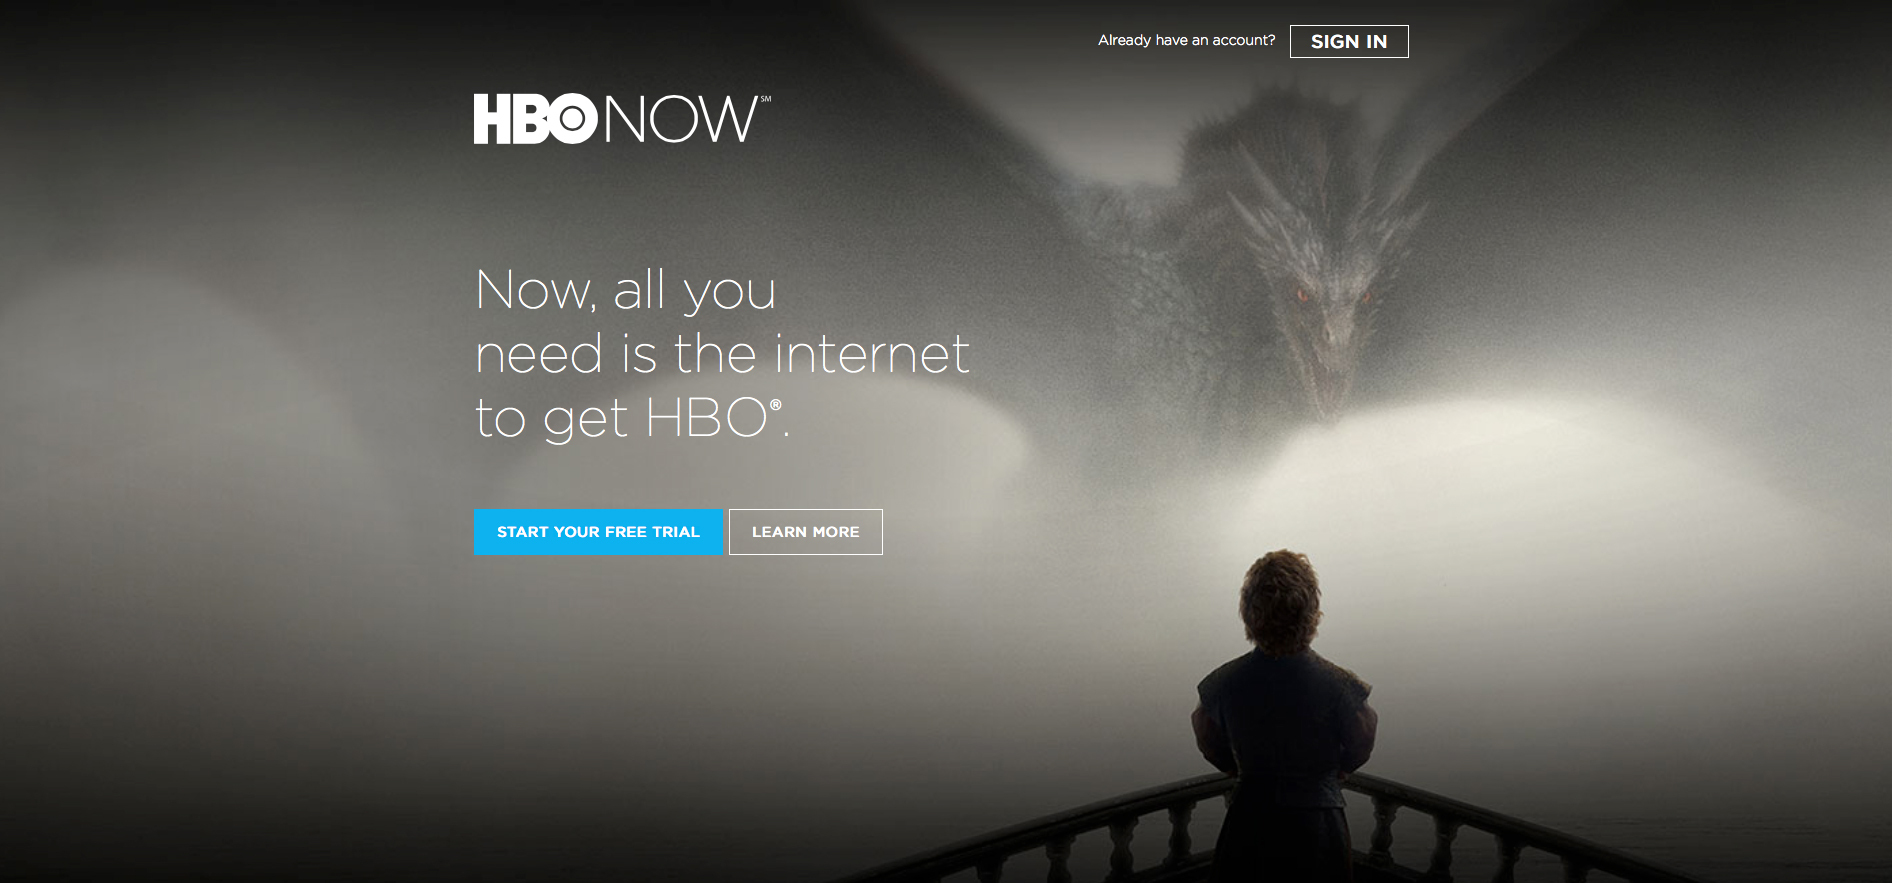 Premium content providers, like HBO Now, only pay Apple a 15 percent cut when users sign-up on the Apple TV